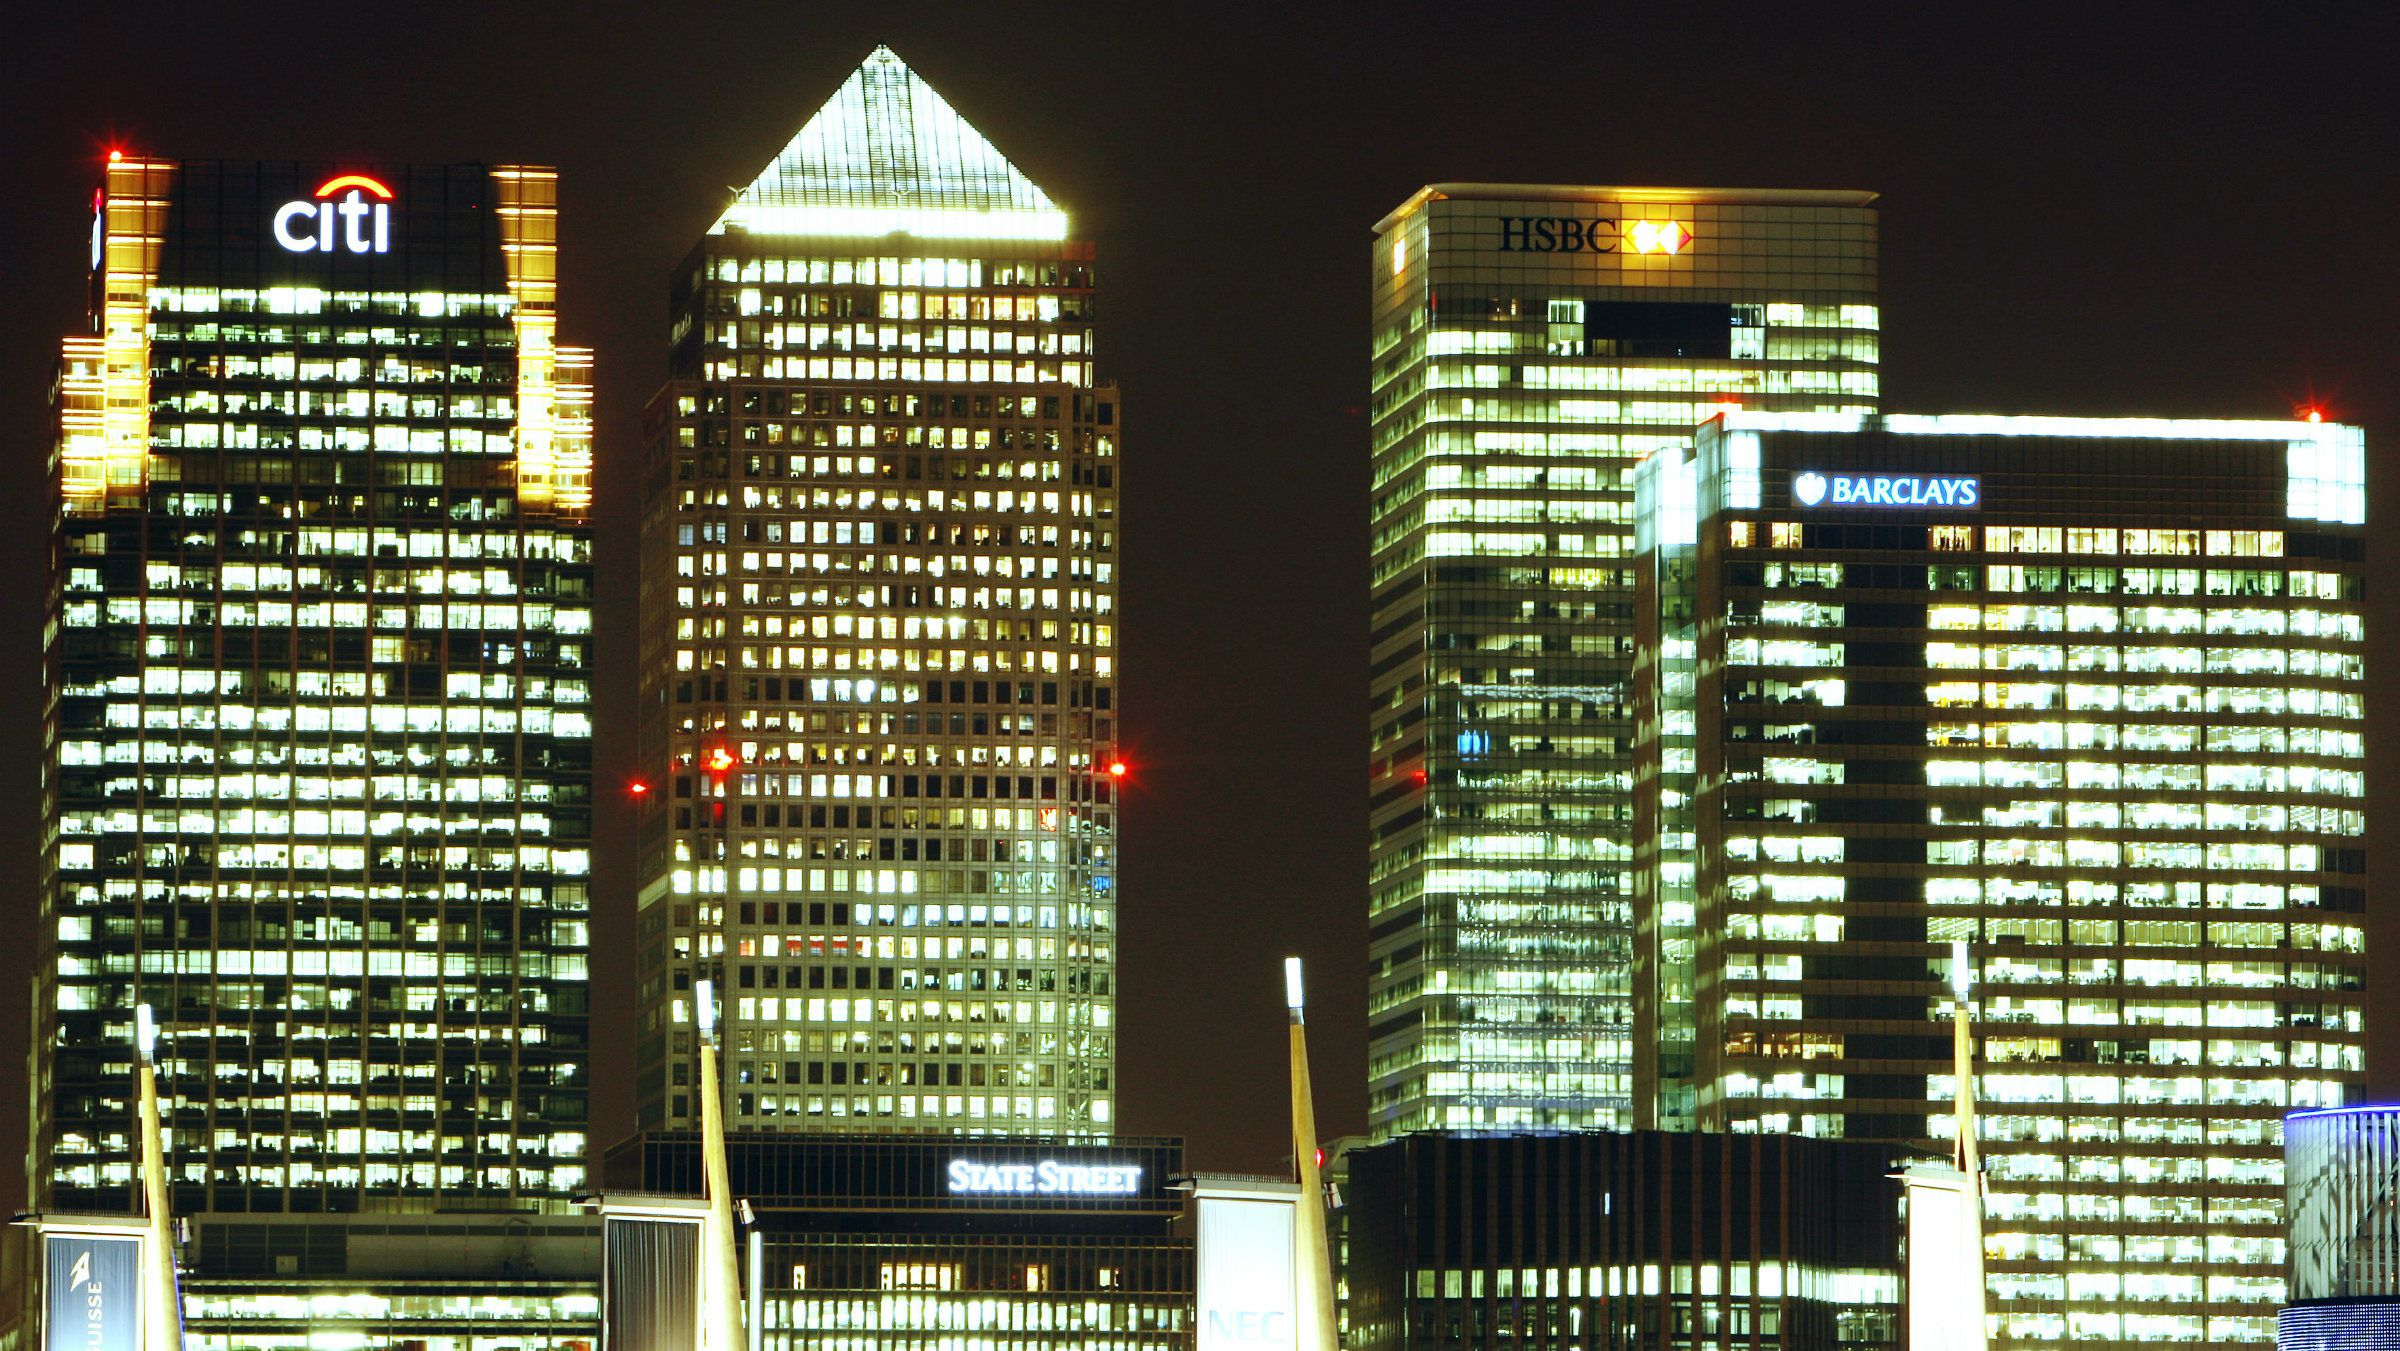 The Canary Wharf business district of London.